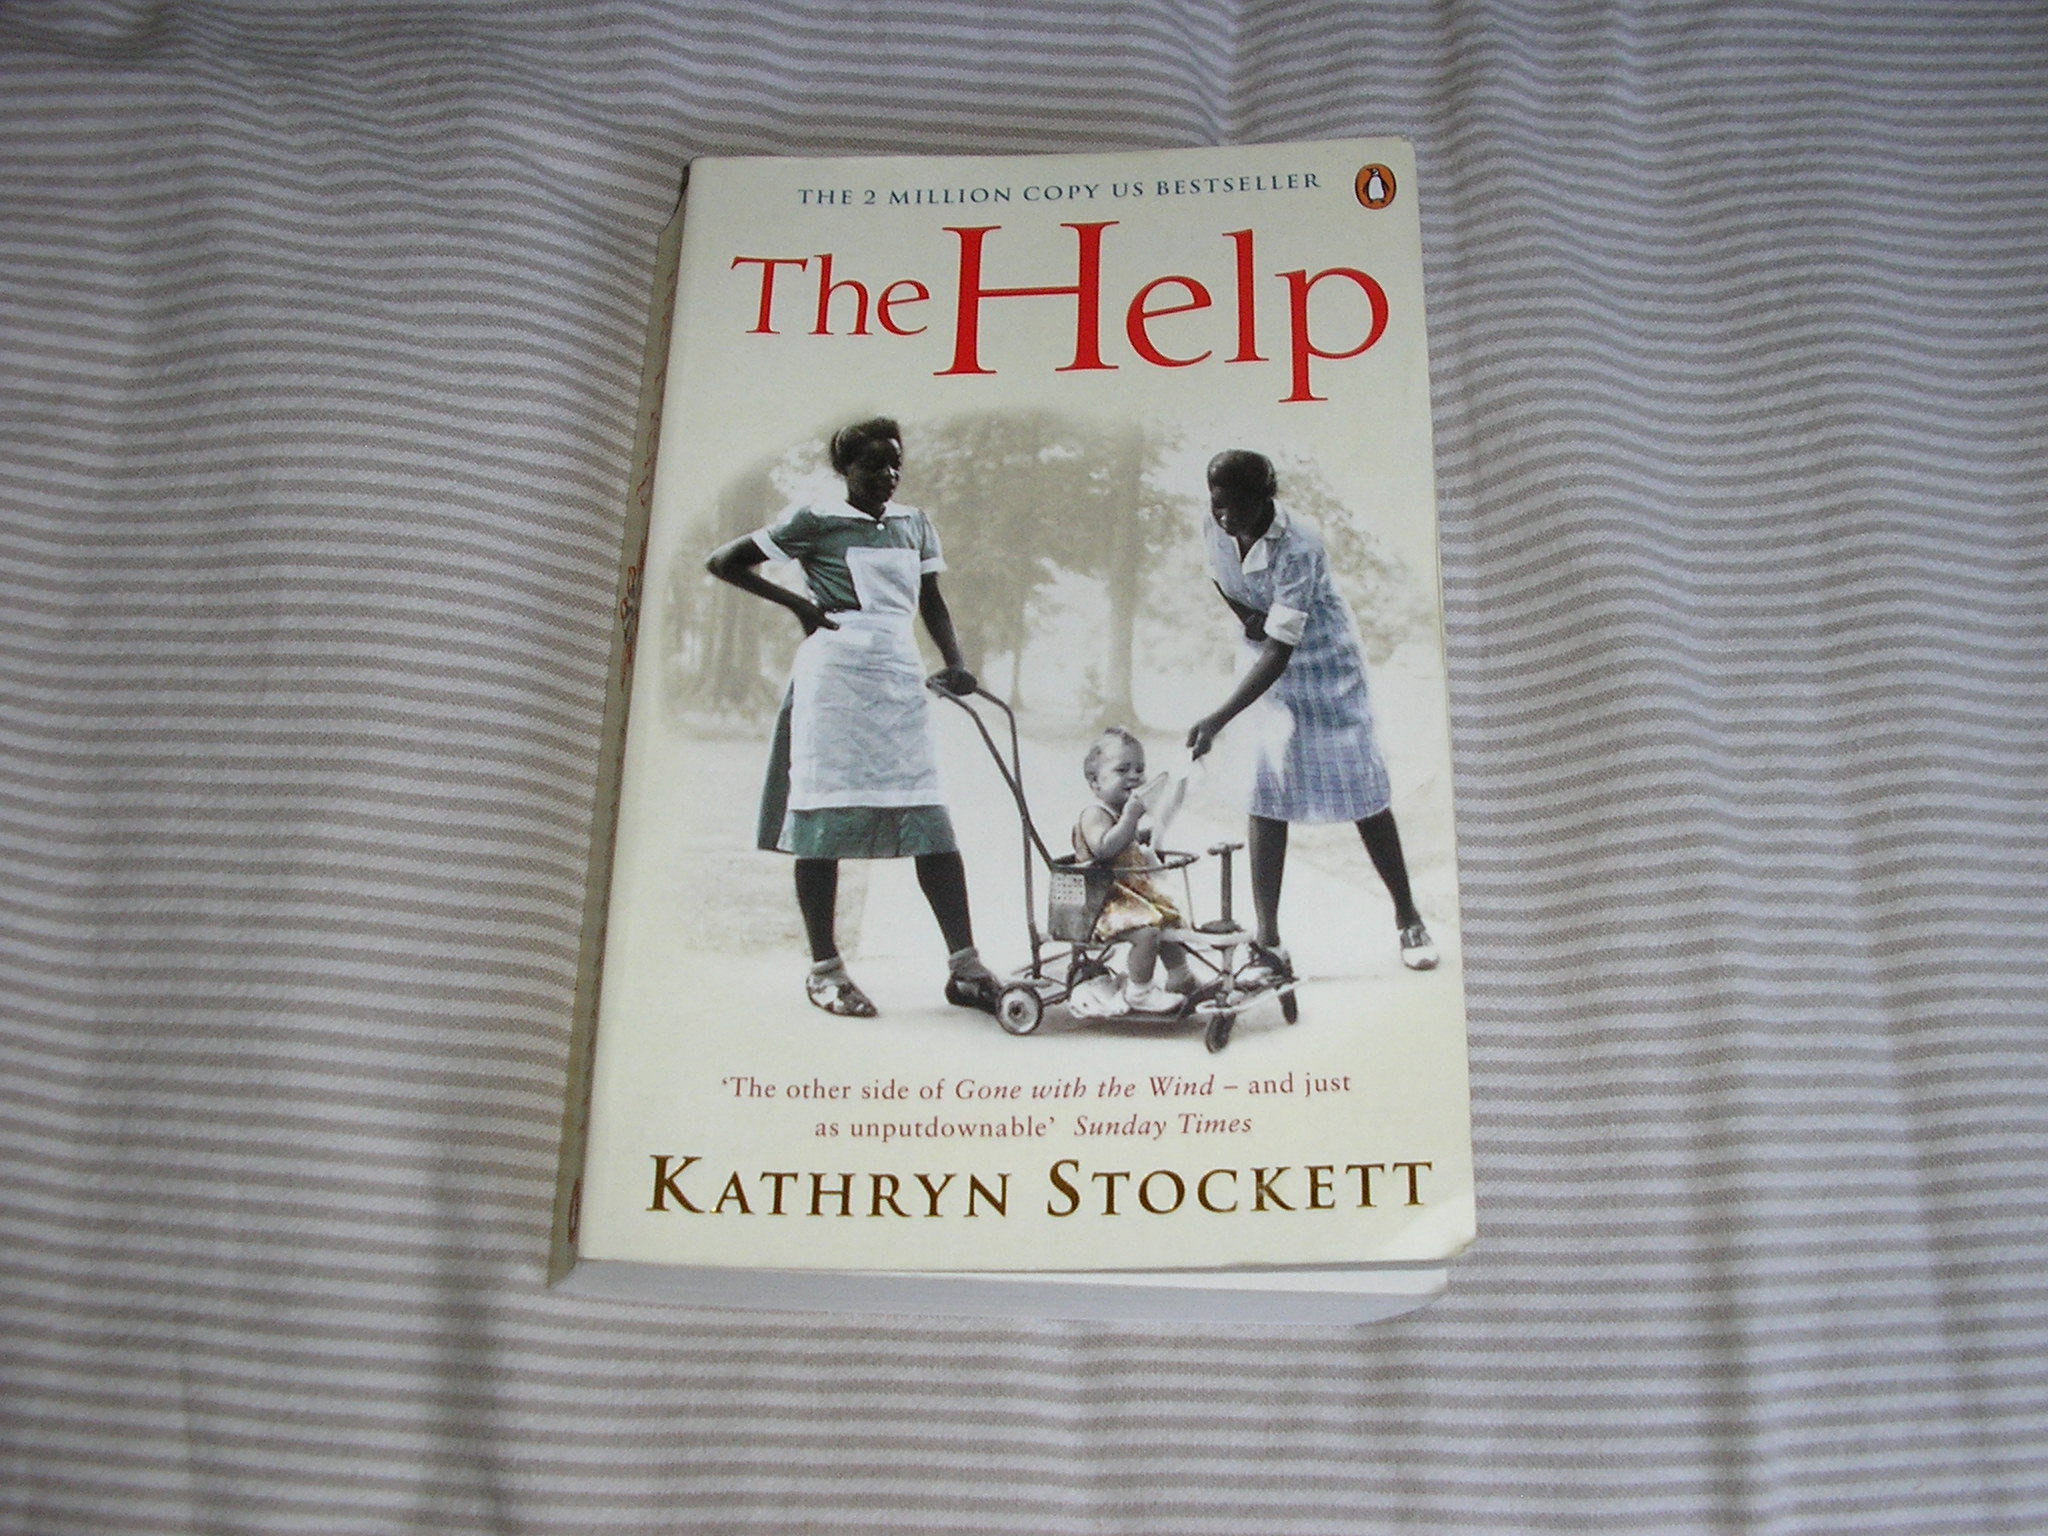 the life during the 1960s in jackson mississippi in the help a novel by kathryn stockett Winner of bookbrowse's 2009 reader awards kathyrn stockett's compelling debut novel the help investigates the relationship between black and white women in 1960s mississippi at the center of the novel are skeeter, aibileen, and minny, three women who.